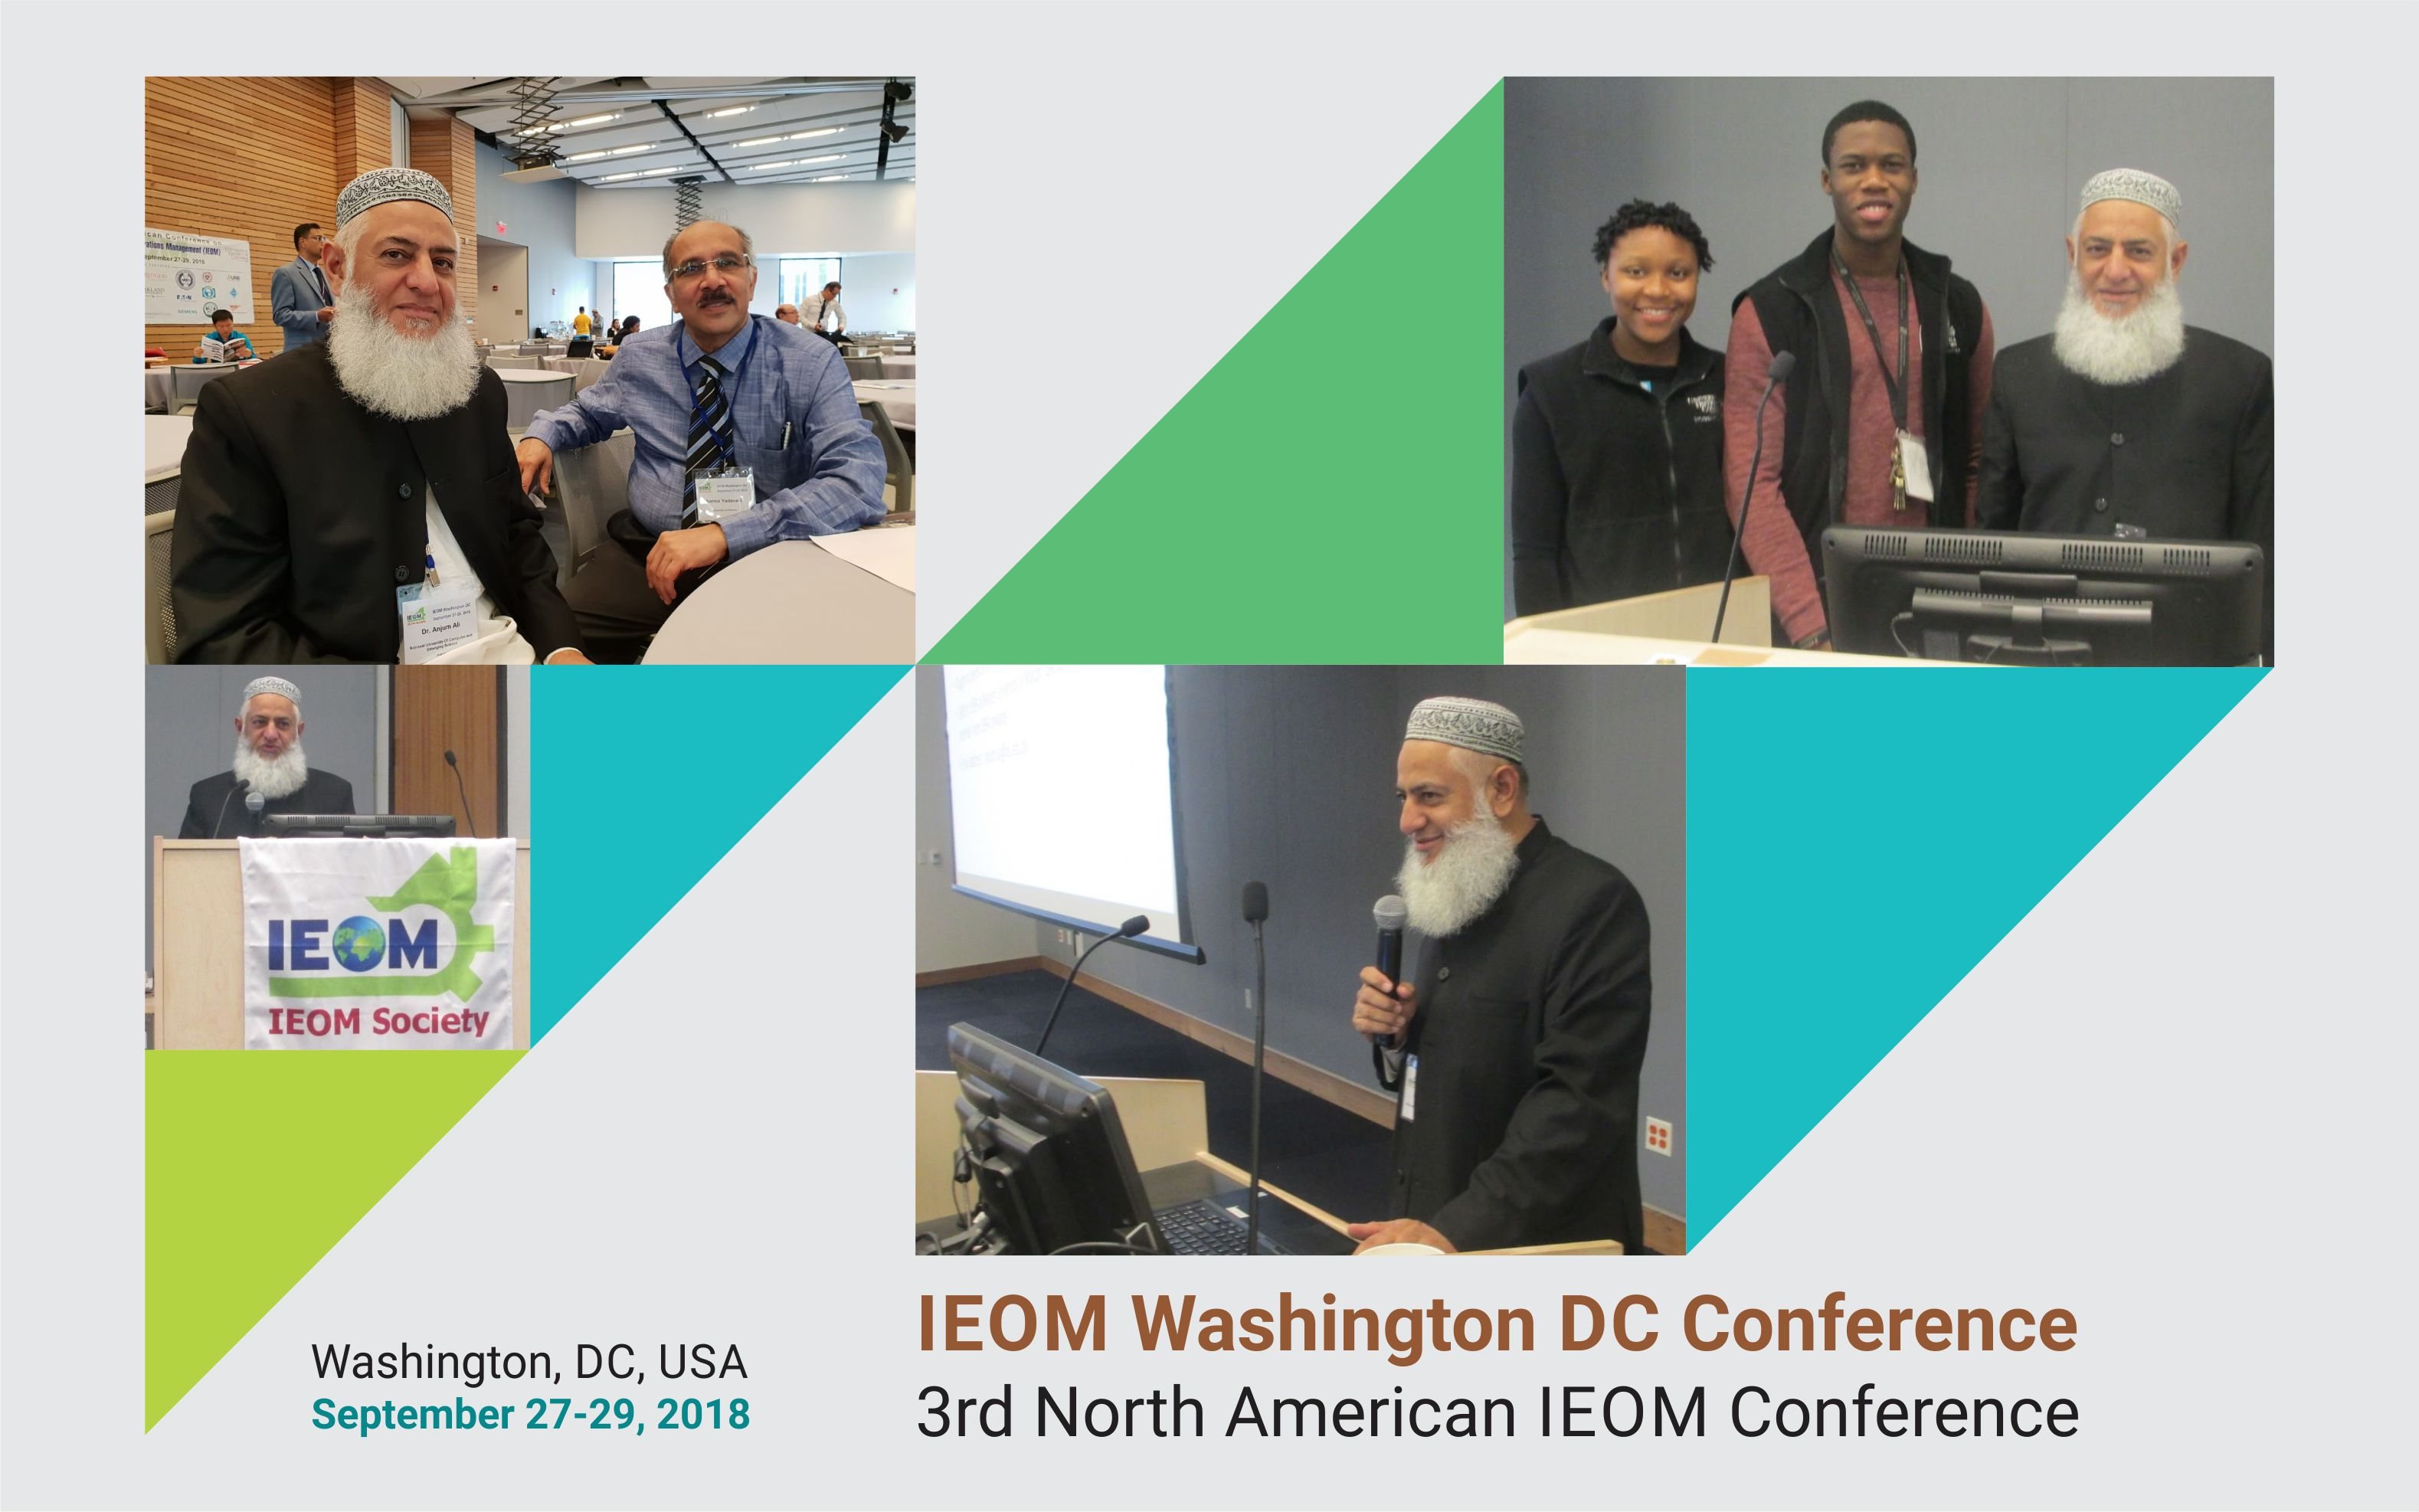 Dr. Anjum Ali: Distinguished Speaker at IEOM Washington DC Conference